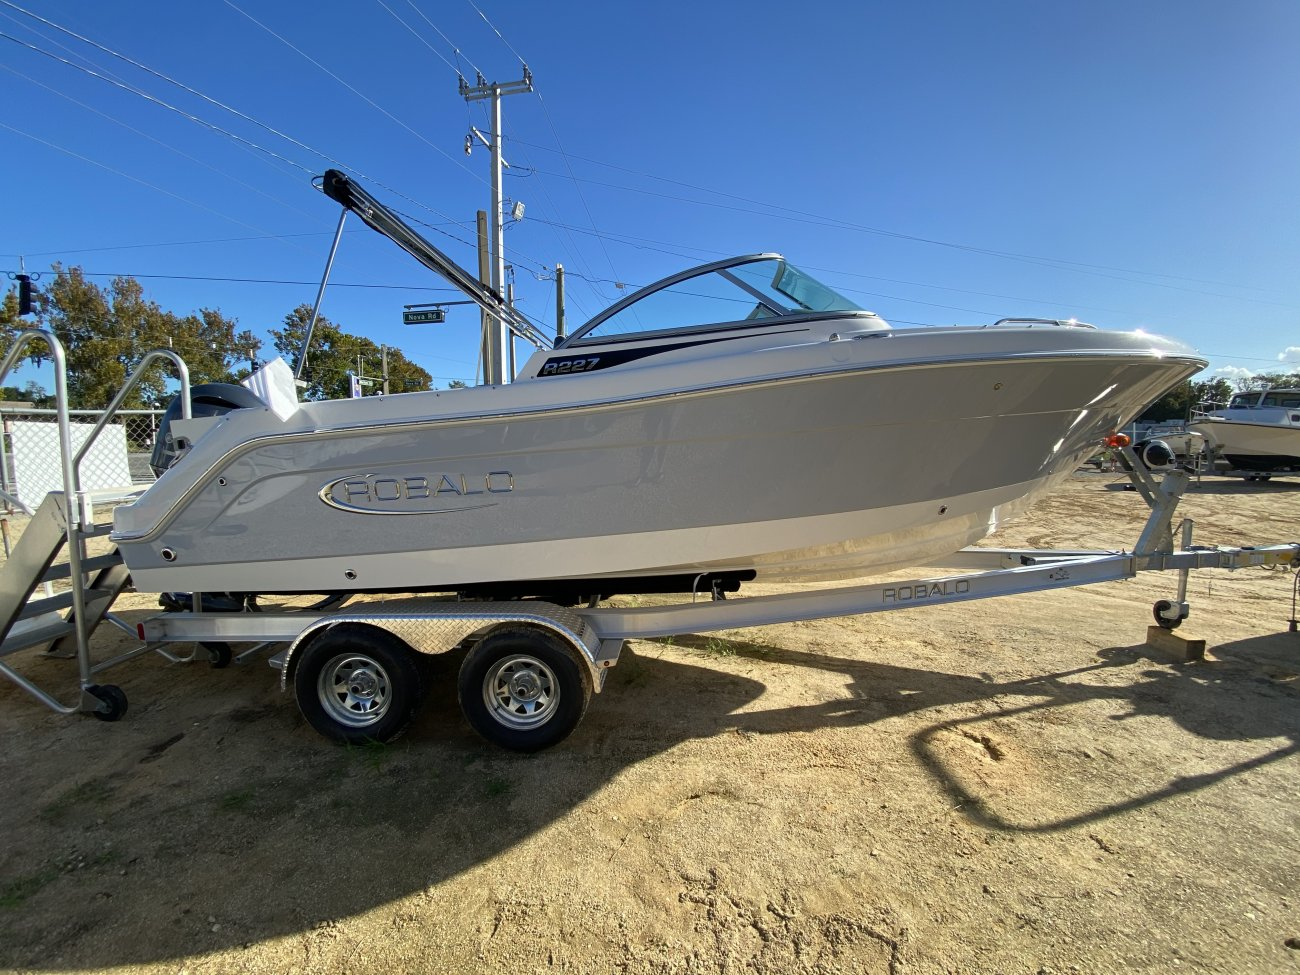 Generally speaking, wakeboard specific boats have weight in the back of the boat and make the wake larger and steeper. Most wakeboard boats will have several features that help to create large wakes.